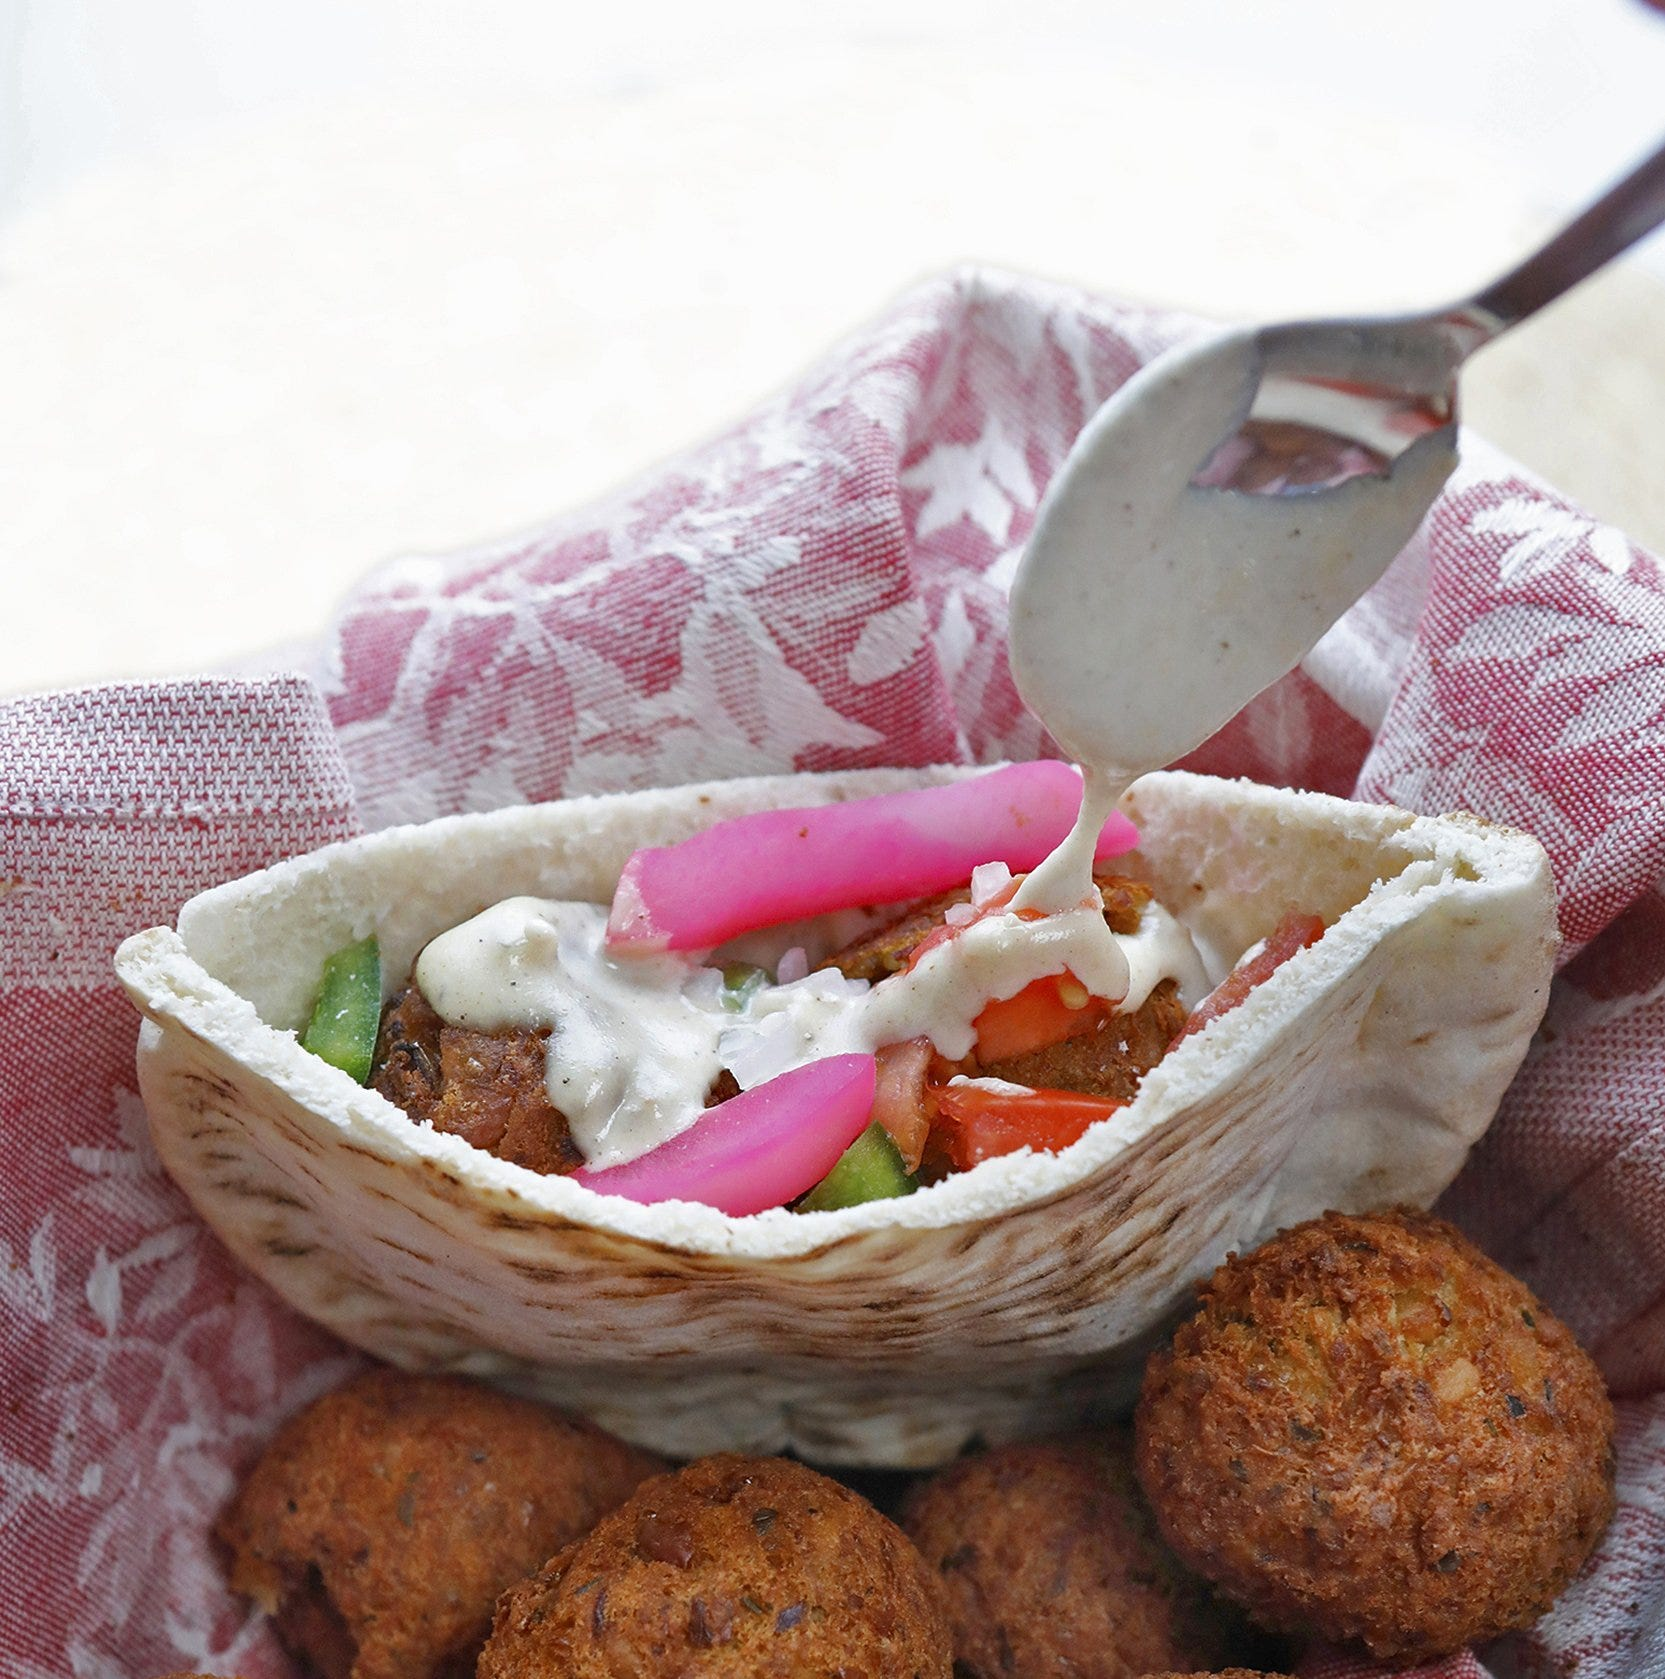 Falafel, the ubiquitous street food of the Middle East